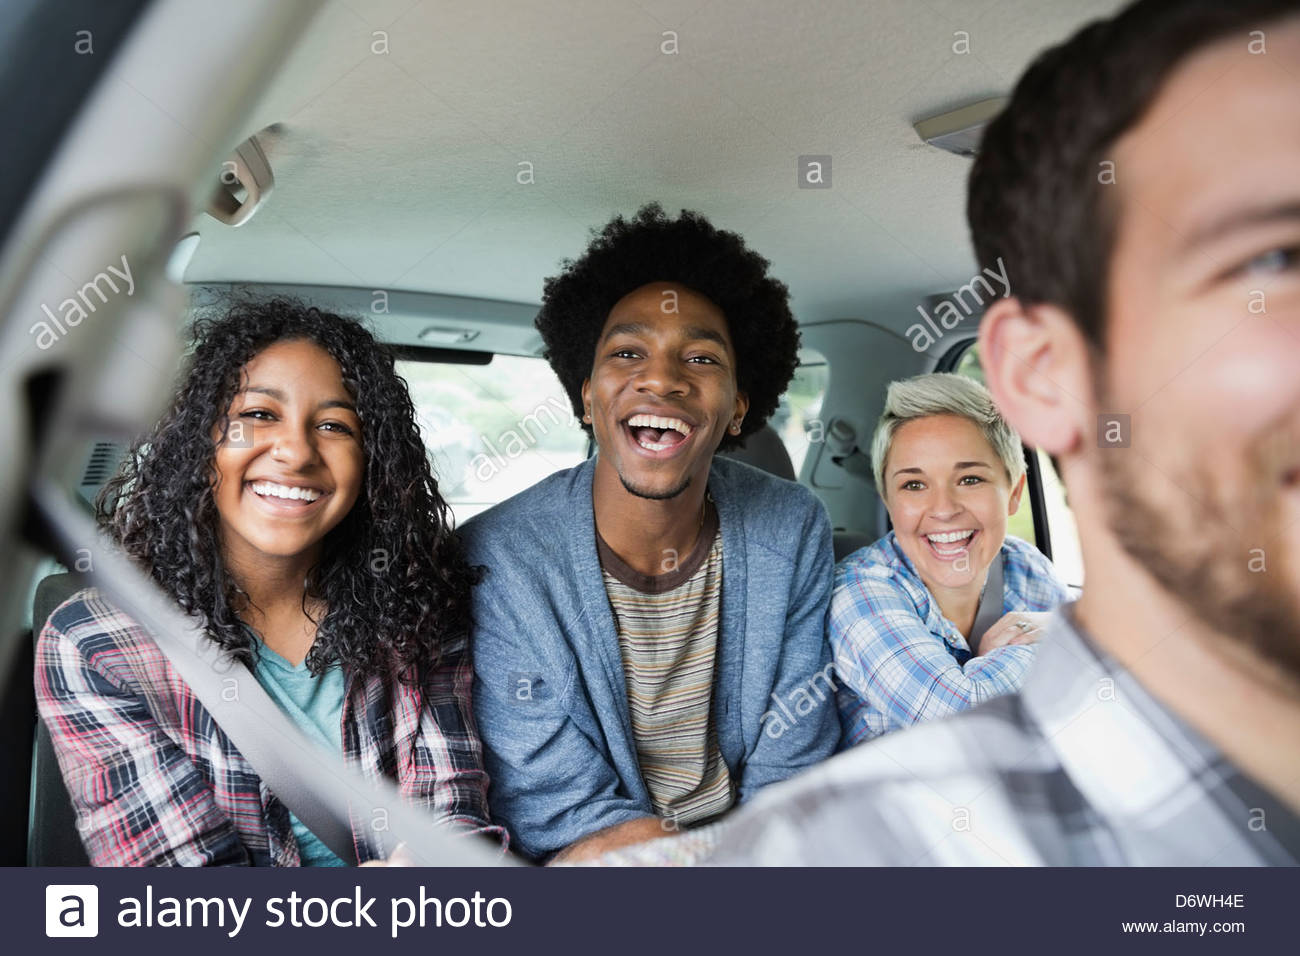 Portrait of happy teenage girl enjoying road trip with friends in truck - Stock Image